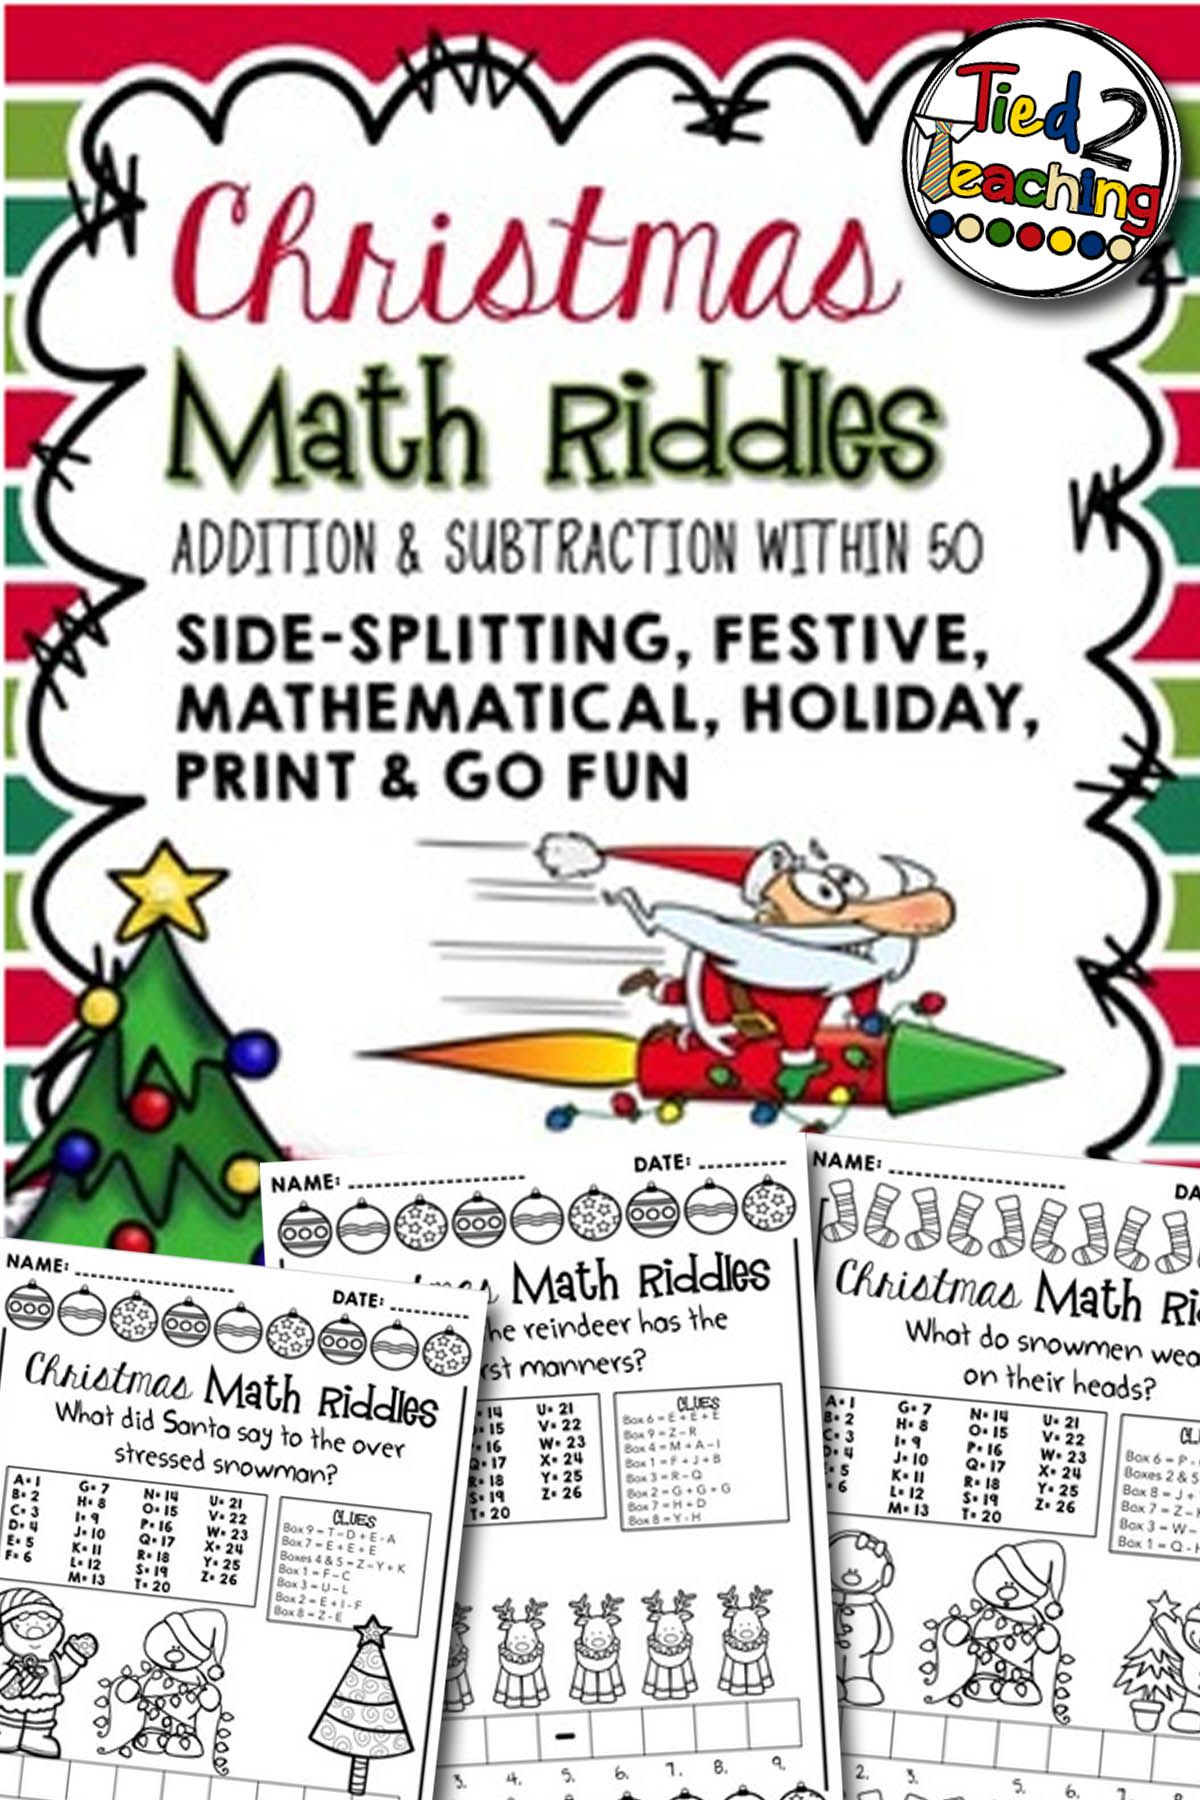 Christmas Math Riddle Printables (With images) Math